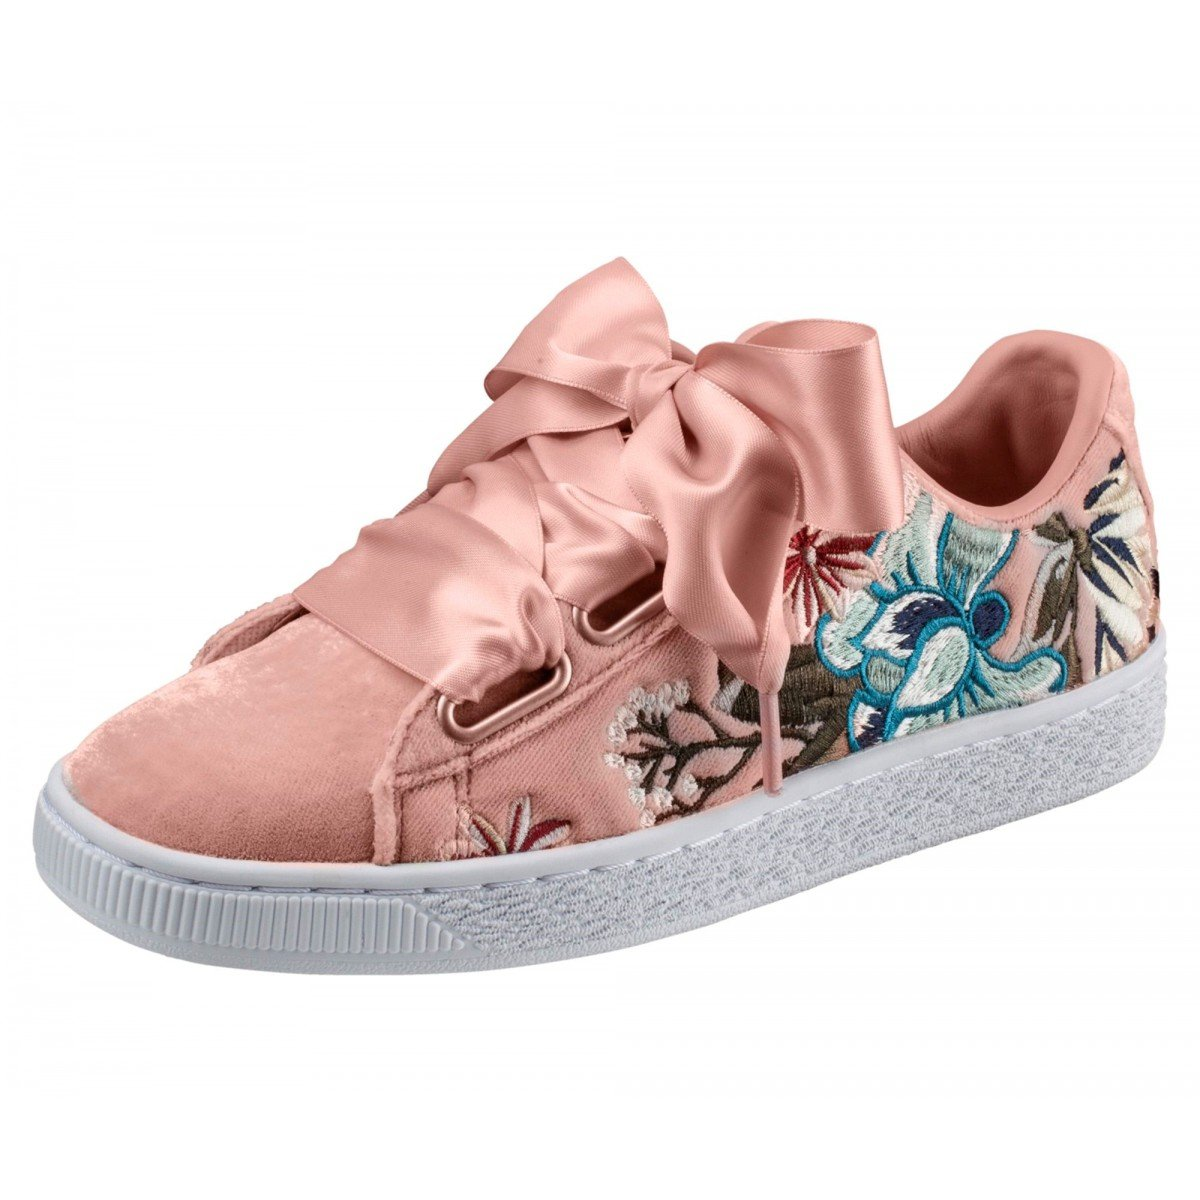 Puma Suede Heart Hyper Embroidery - 36611602: Amazon.de: Schuhe ...